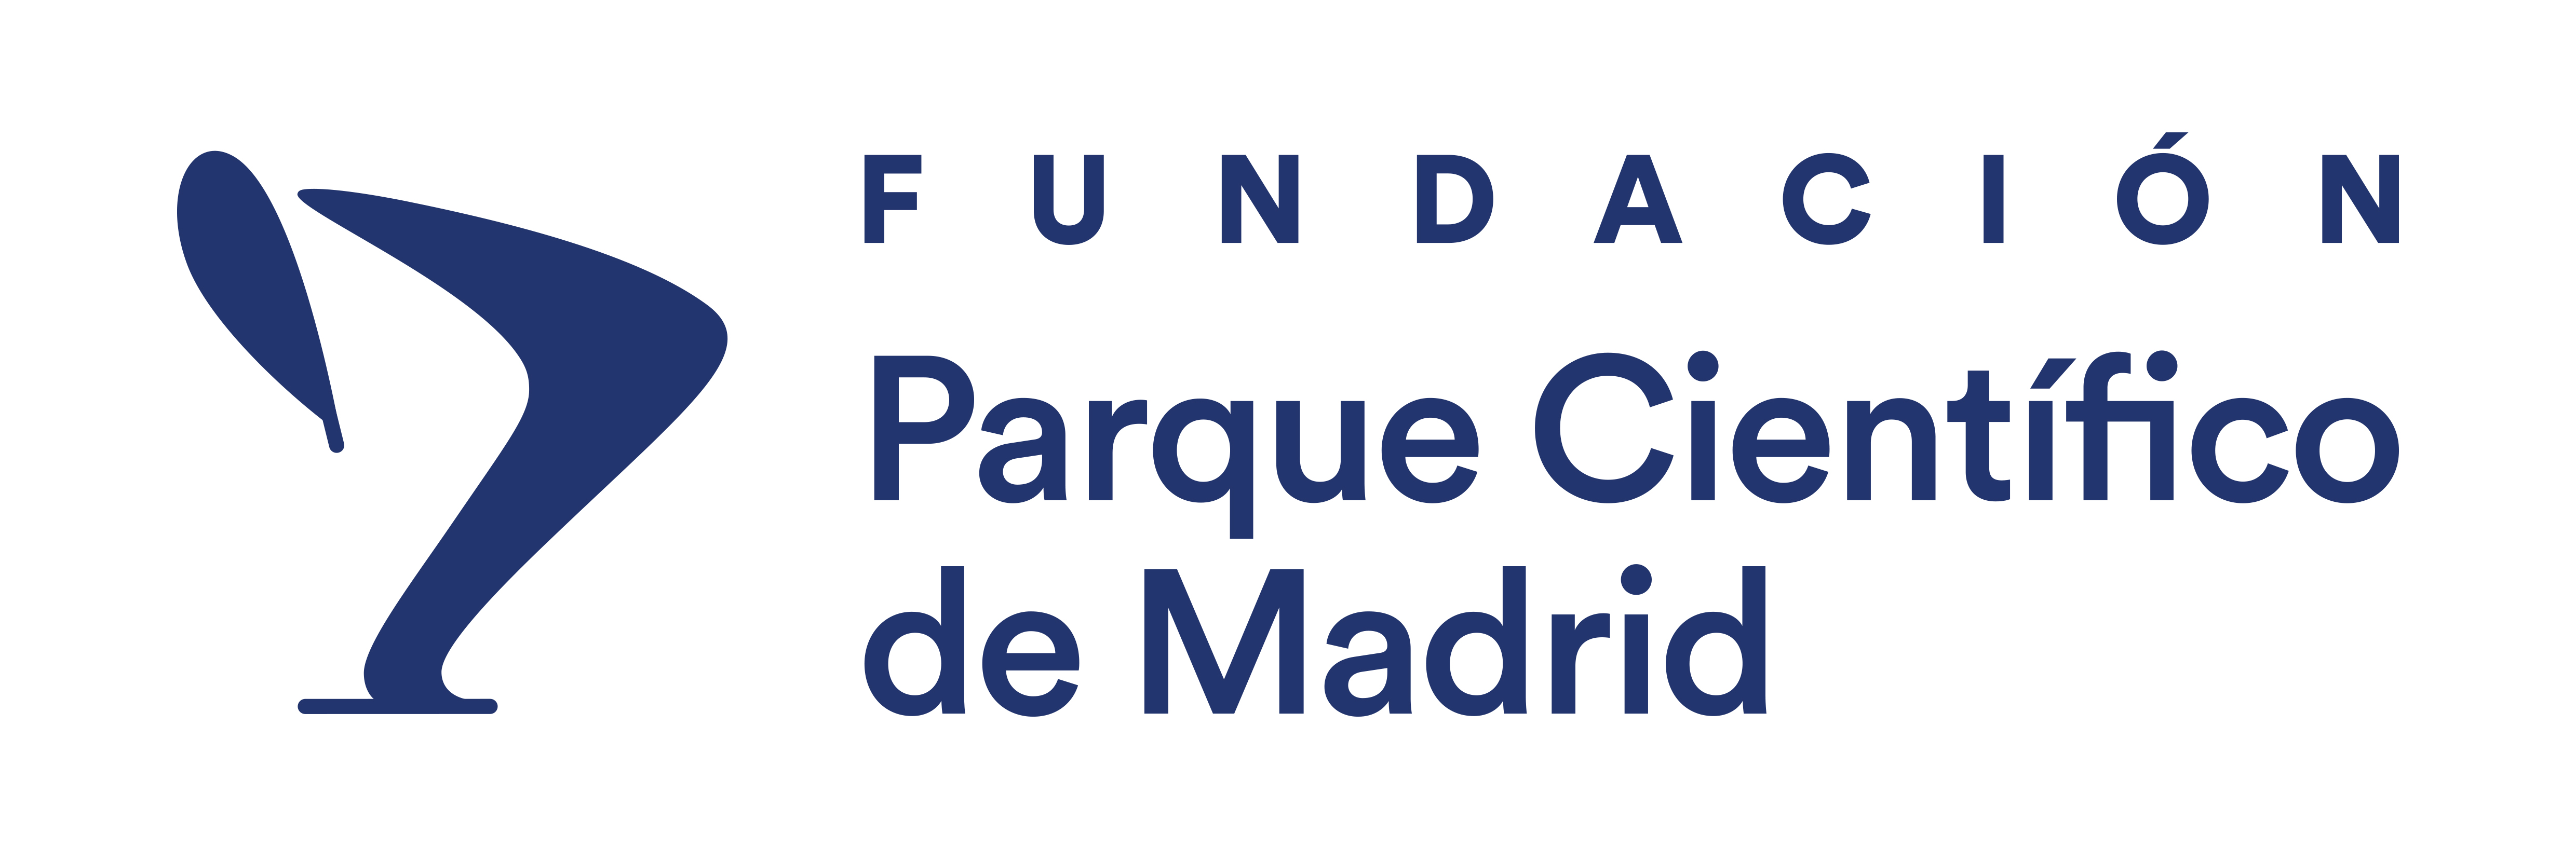 FPCM_logo_color_horizontal.jpg